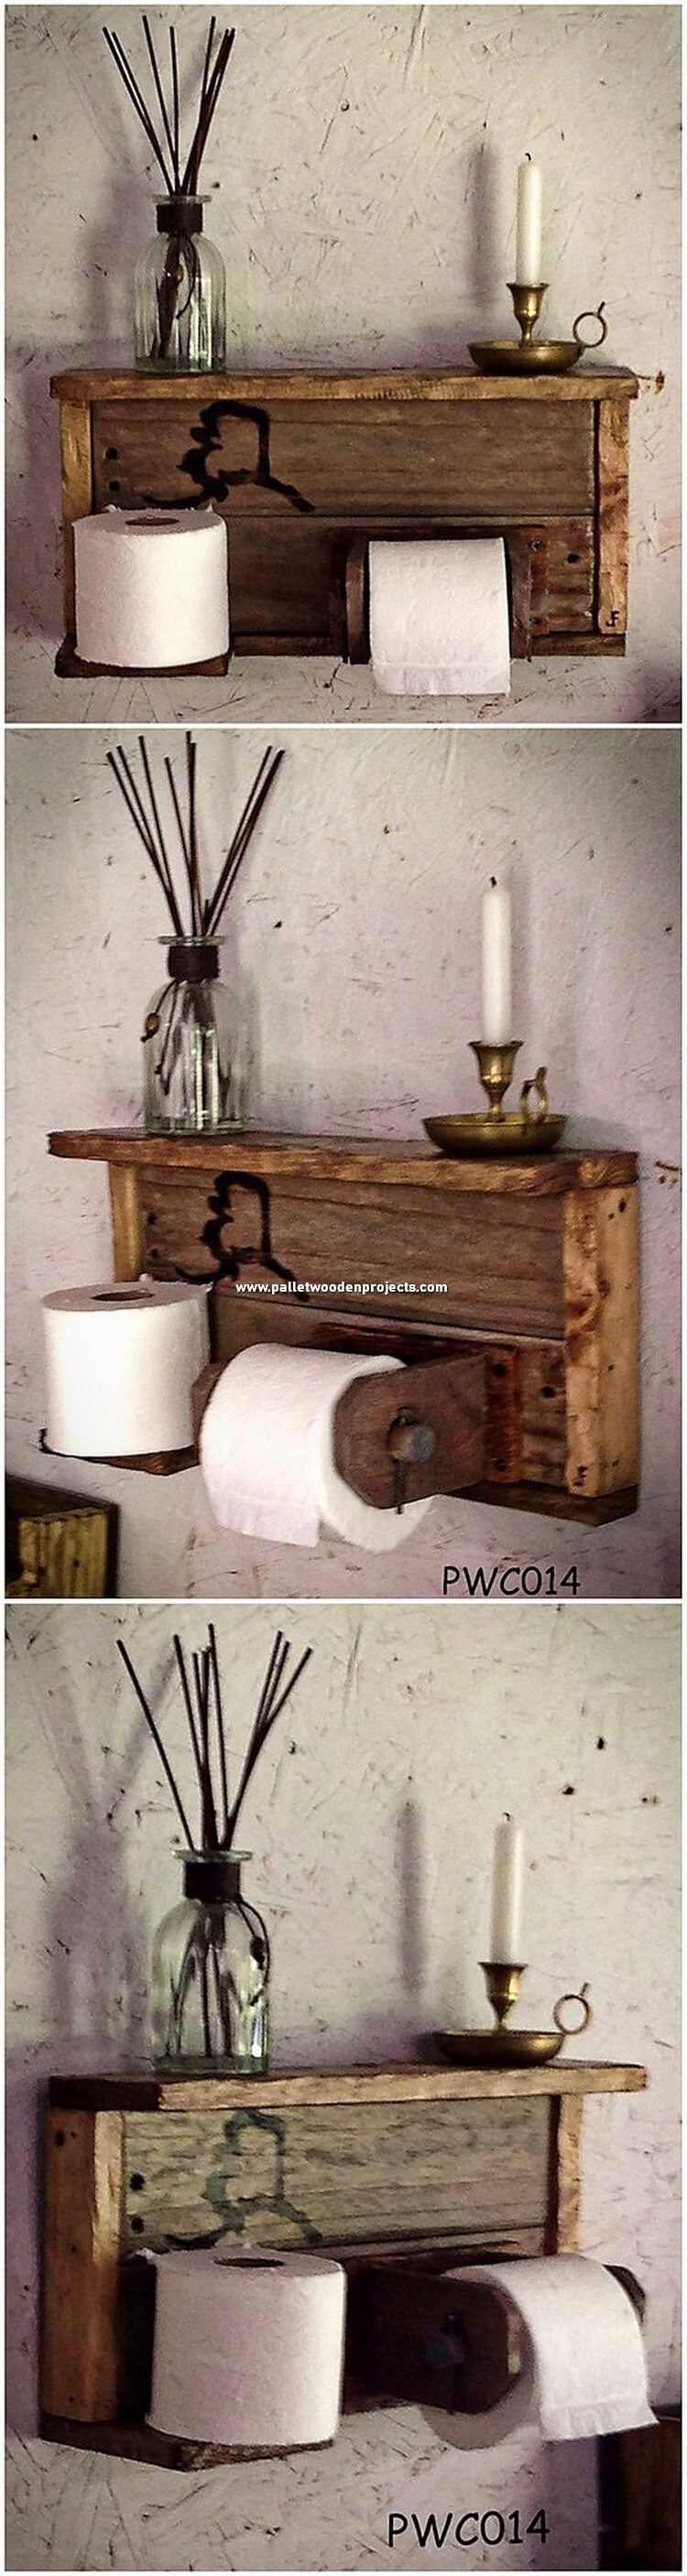 Pallet Bathroom Shelf